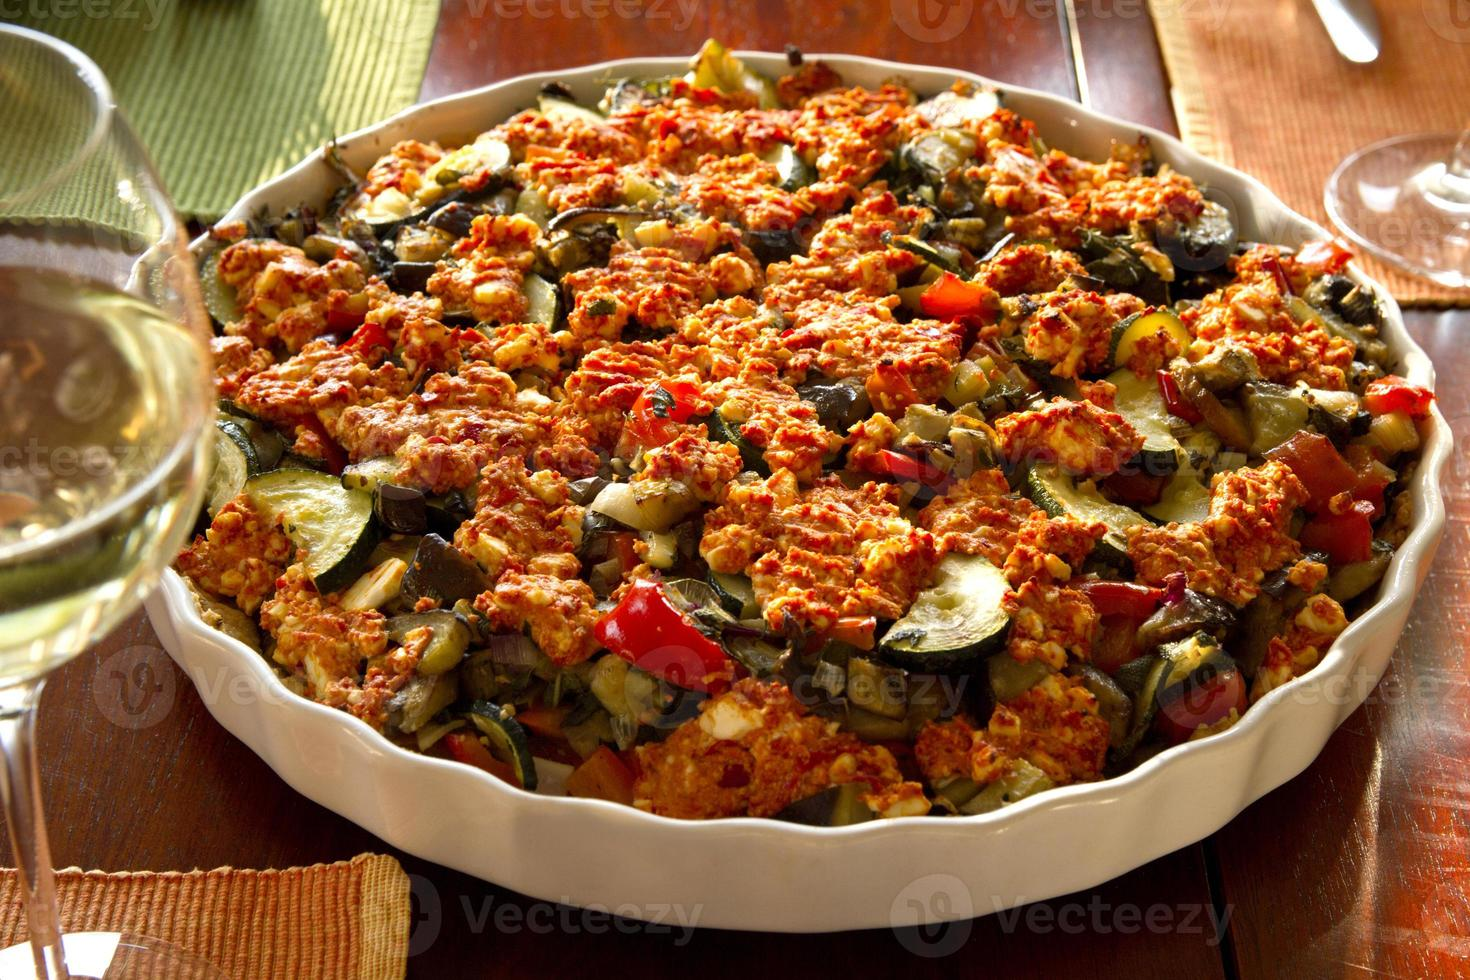 Vegetable casserole photo